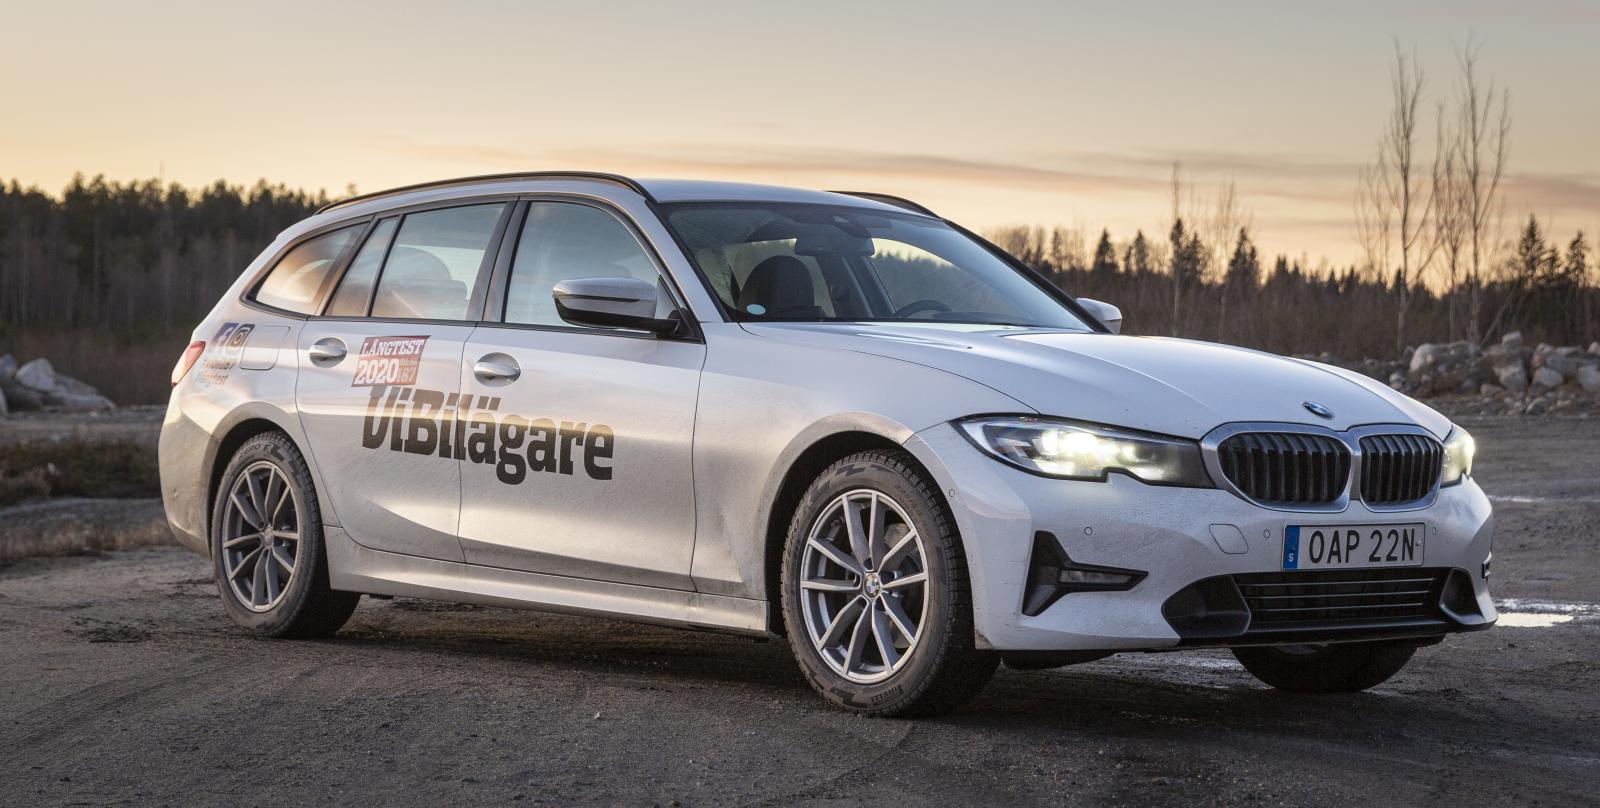 Långtest: BMW 3-serie Touring (2020)